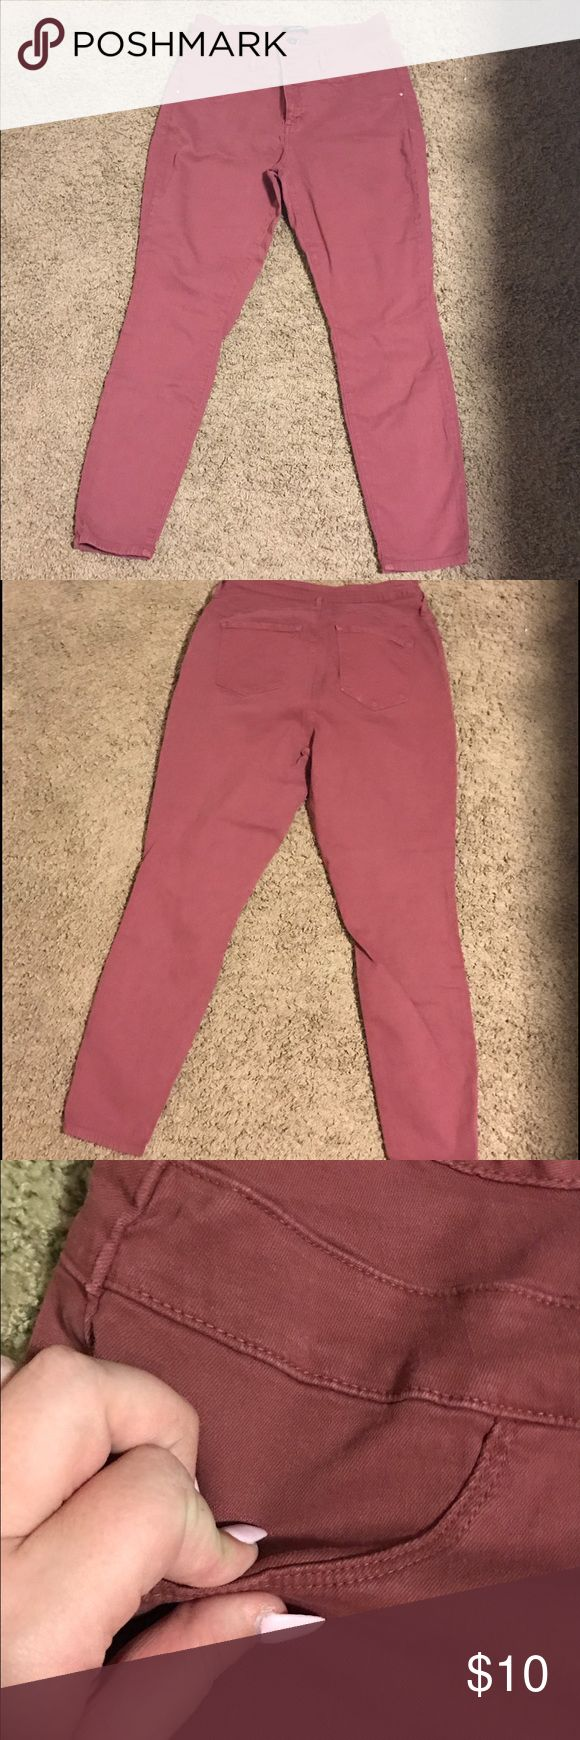 Refuge Plus Dark Blush Colored High Waisted Jeans These are size 16 jeans from Refuge+, a plus size brand from Charlotte Russe. They are a dark, blush color that have been worn a handful of times. Slightly loose for a size 16. refuge Jeans Straight Leg